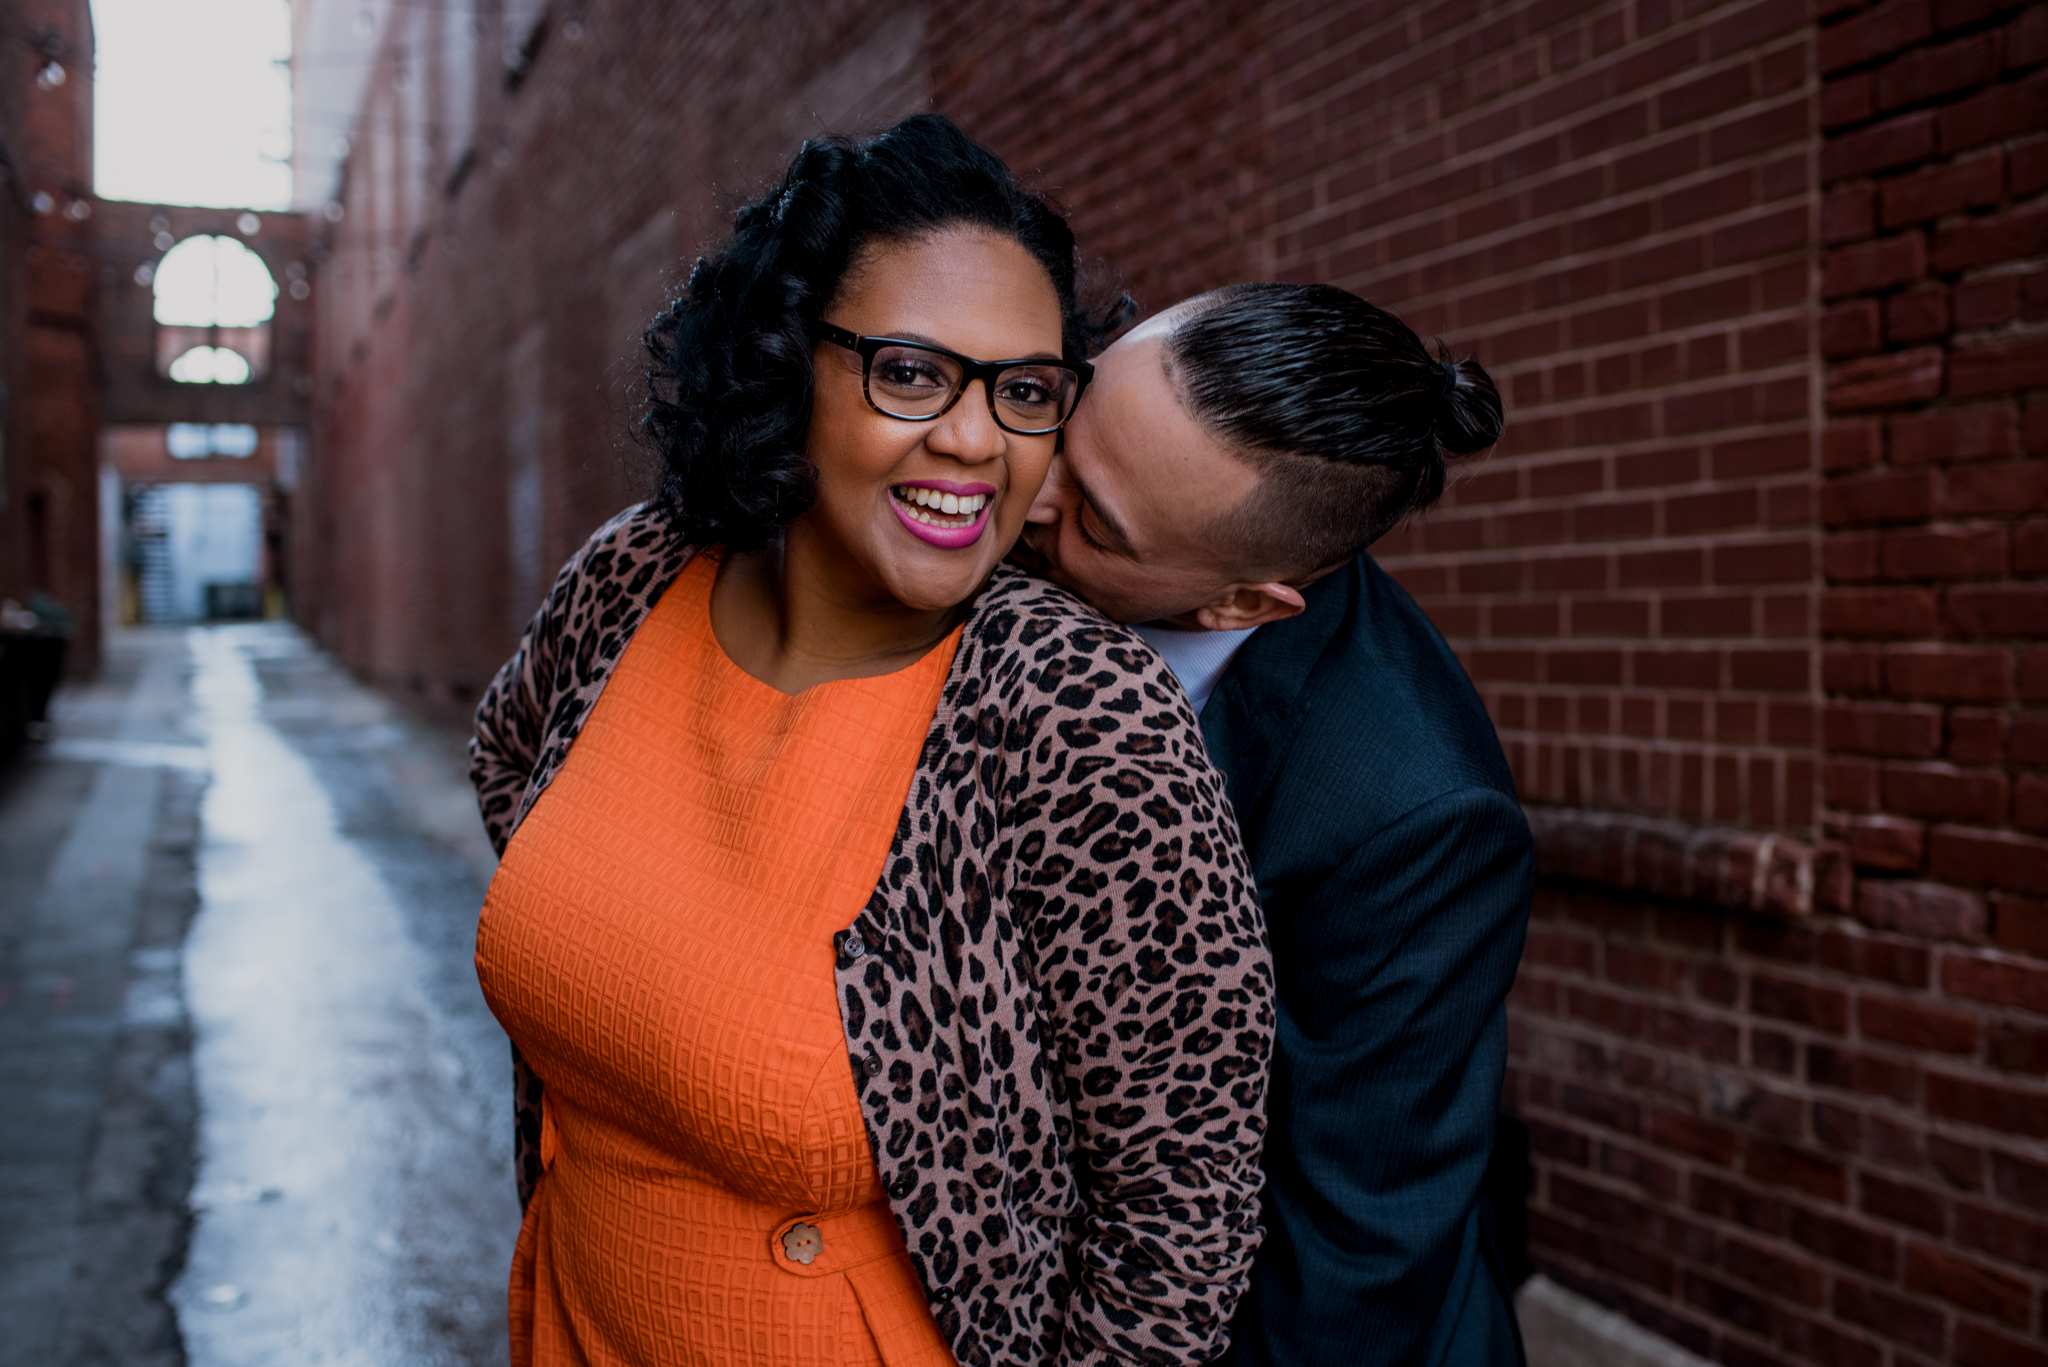 The husband and wife pose together in an alley way outside of The Durham Hotel in Durham, North Carolina, image by Rose Trail Images.